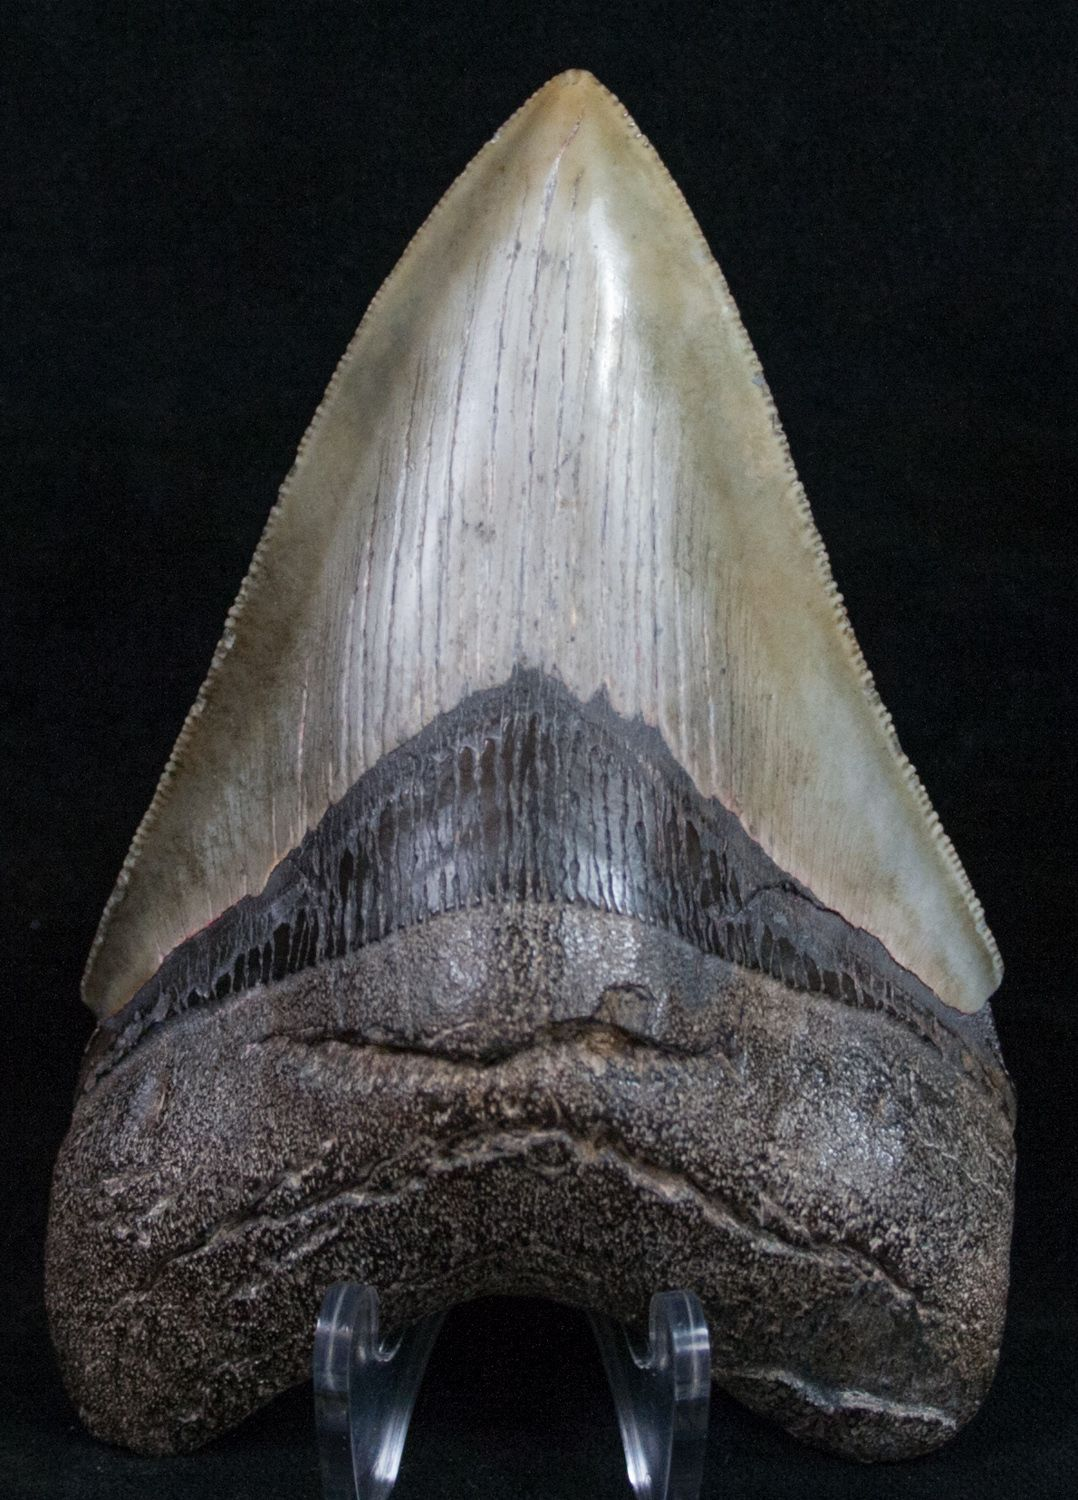 Carcharocles megalodon from River near Medway Sound Georgia #6382-0